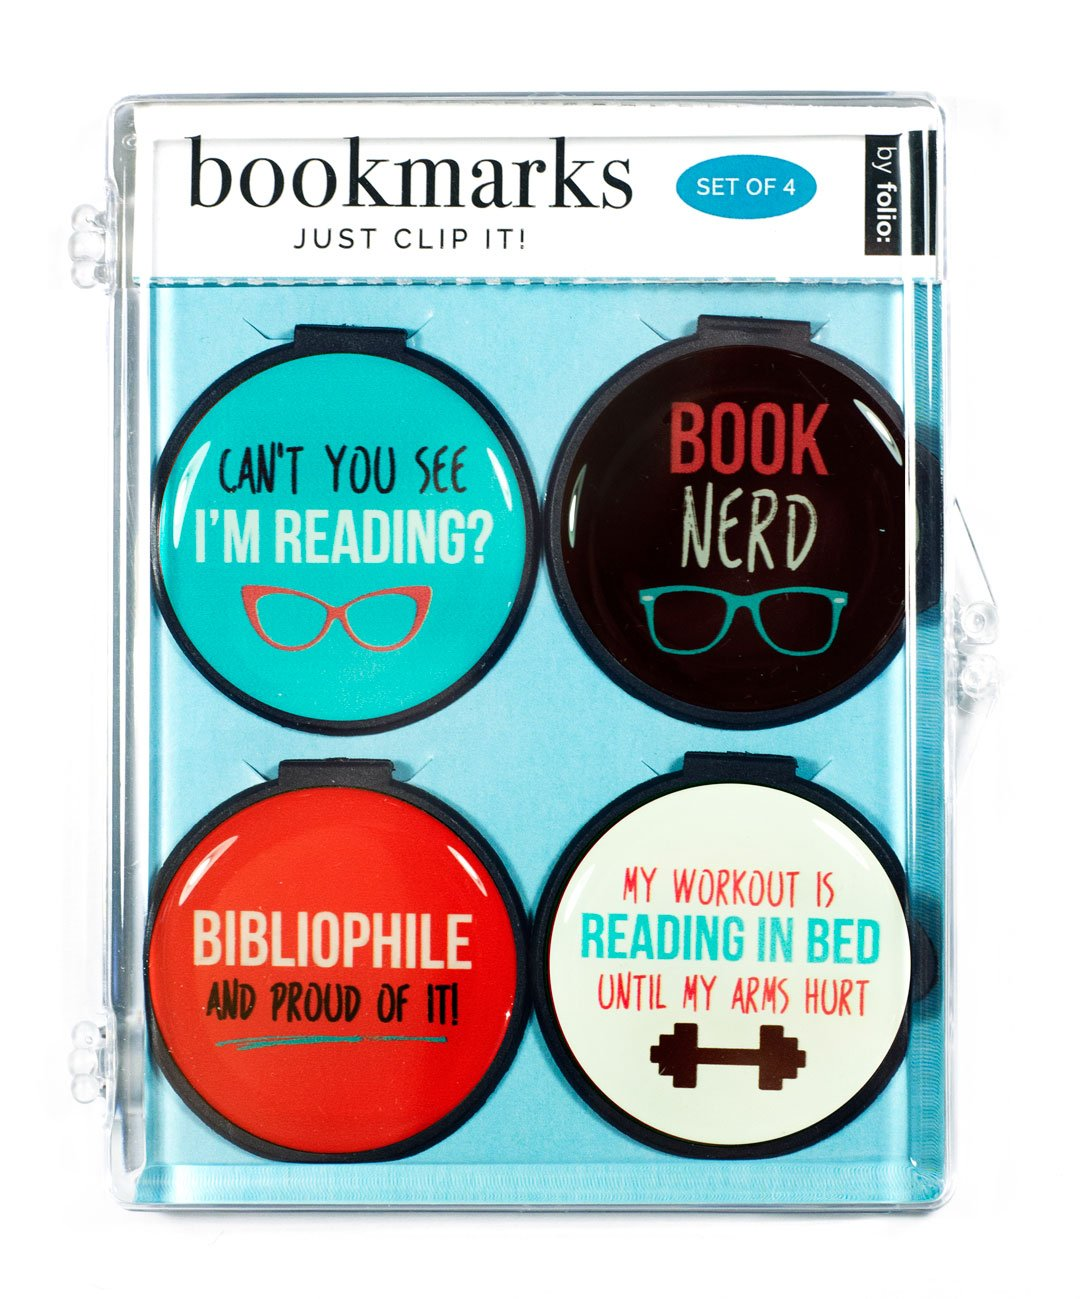 "Just Clip it! Quote Bookmarks - (Set of 4 clip over the page markers) - BOOK NERD, MY WORKOUT is READING IN BED, Can't you see I""M READING, BIBLIOPHILE"